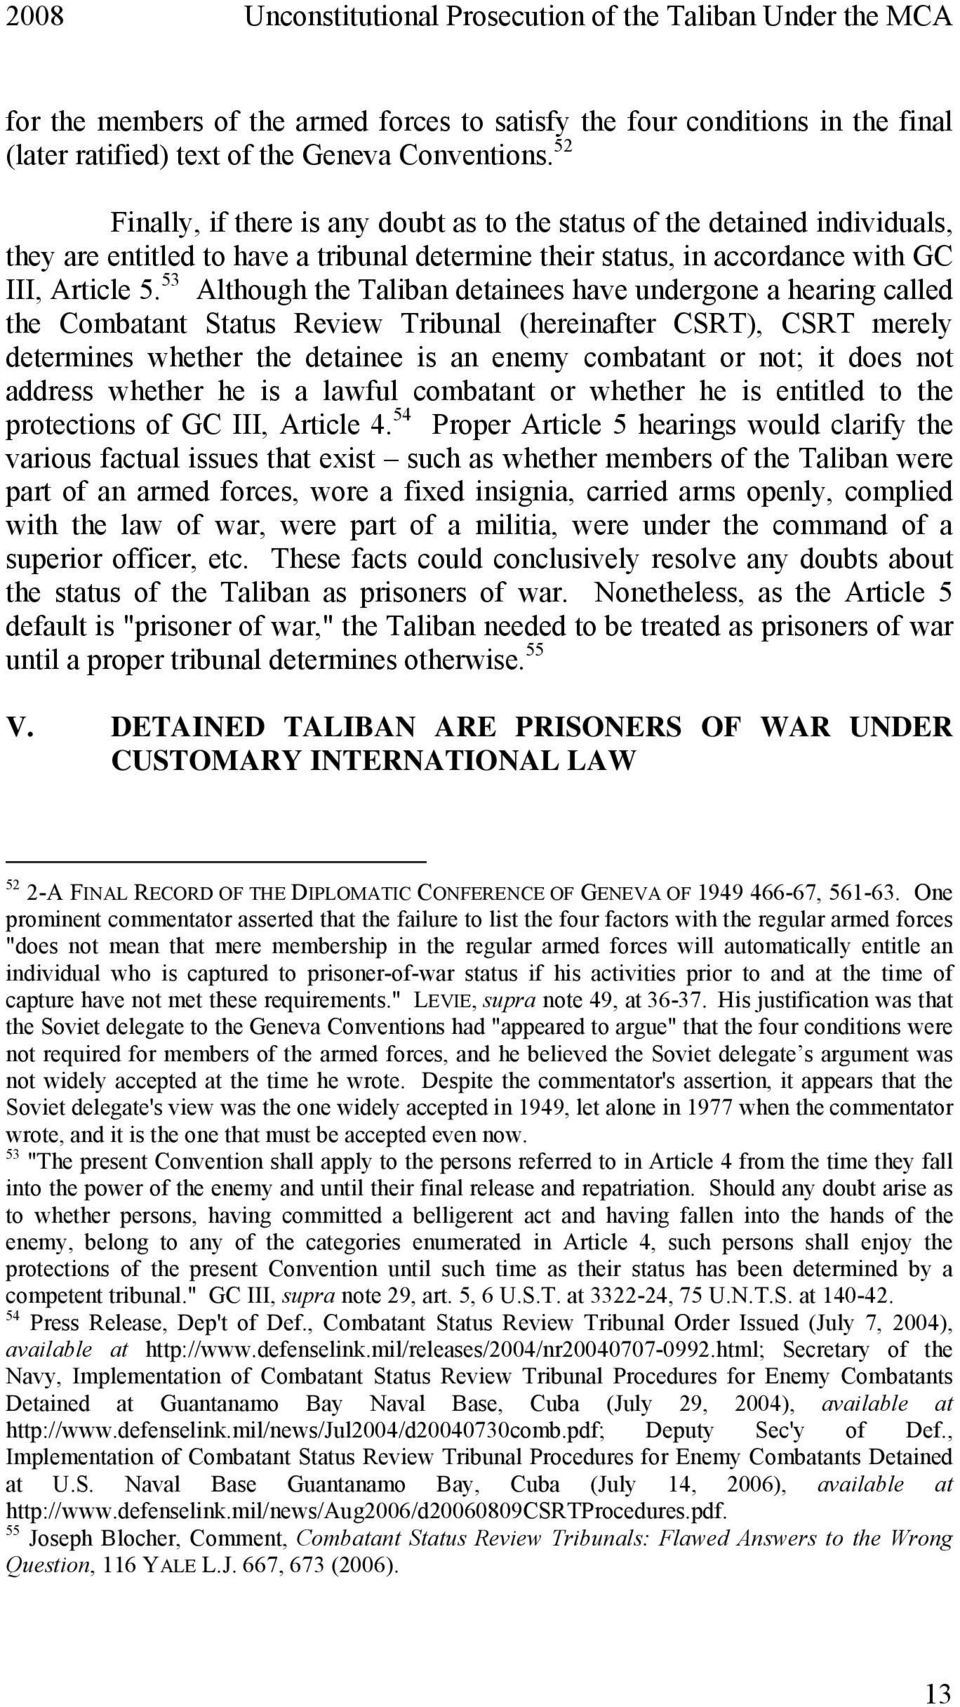 53 Although the Taliban detainees have undergone a hearing called the Combatant Status Review Tribunal (hereinafter CSRT), CSRT merely determines whether the detainee is an enemy combatant or not; it